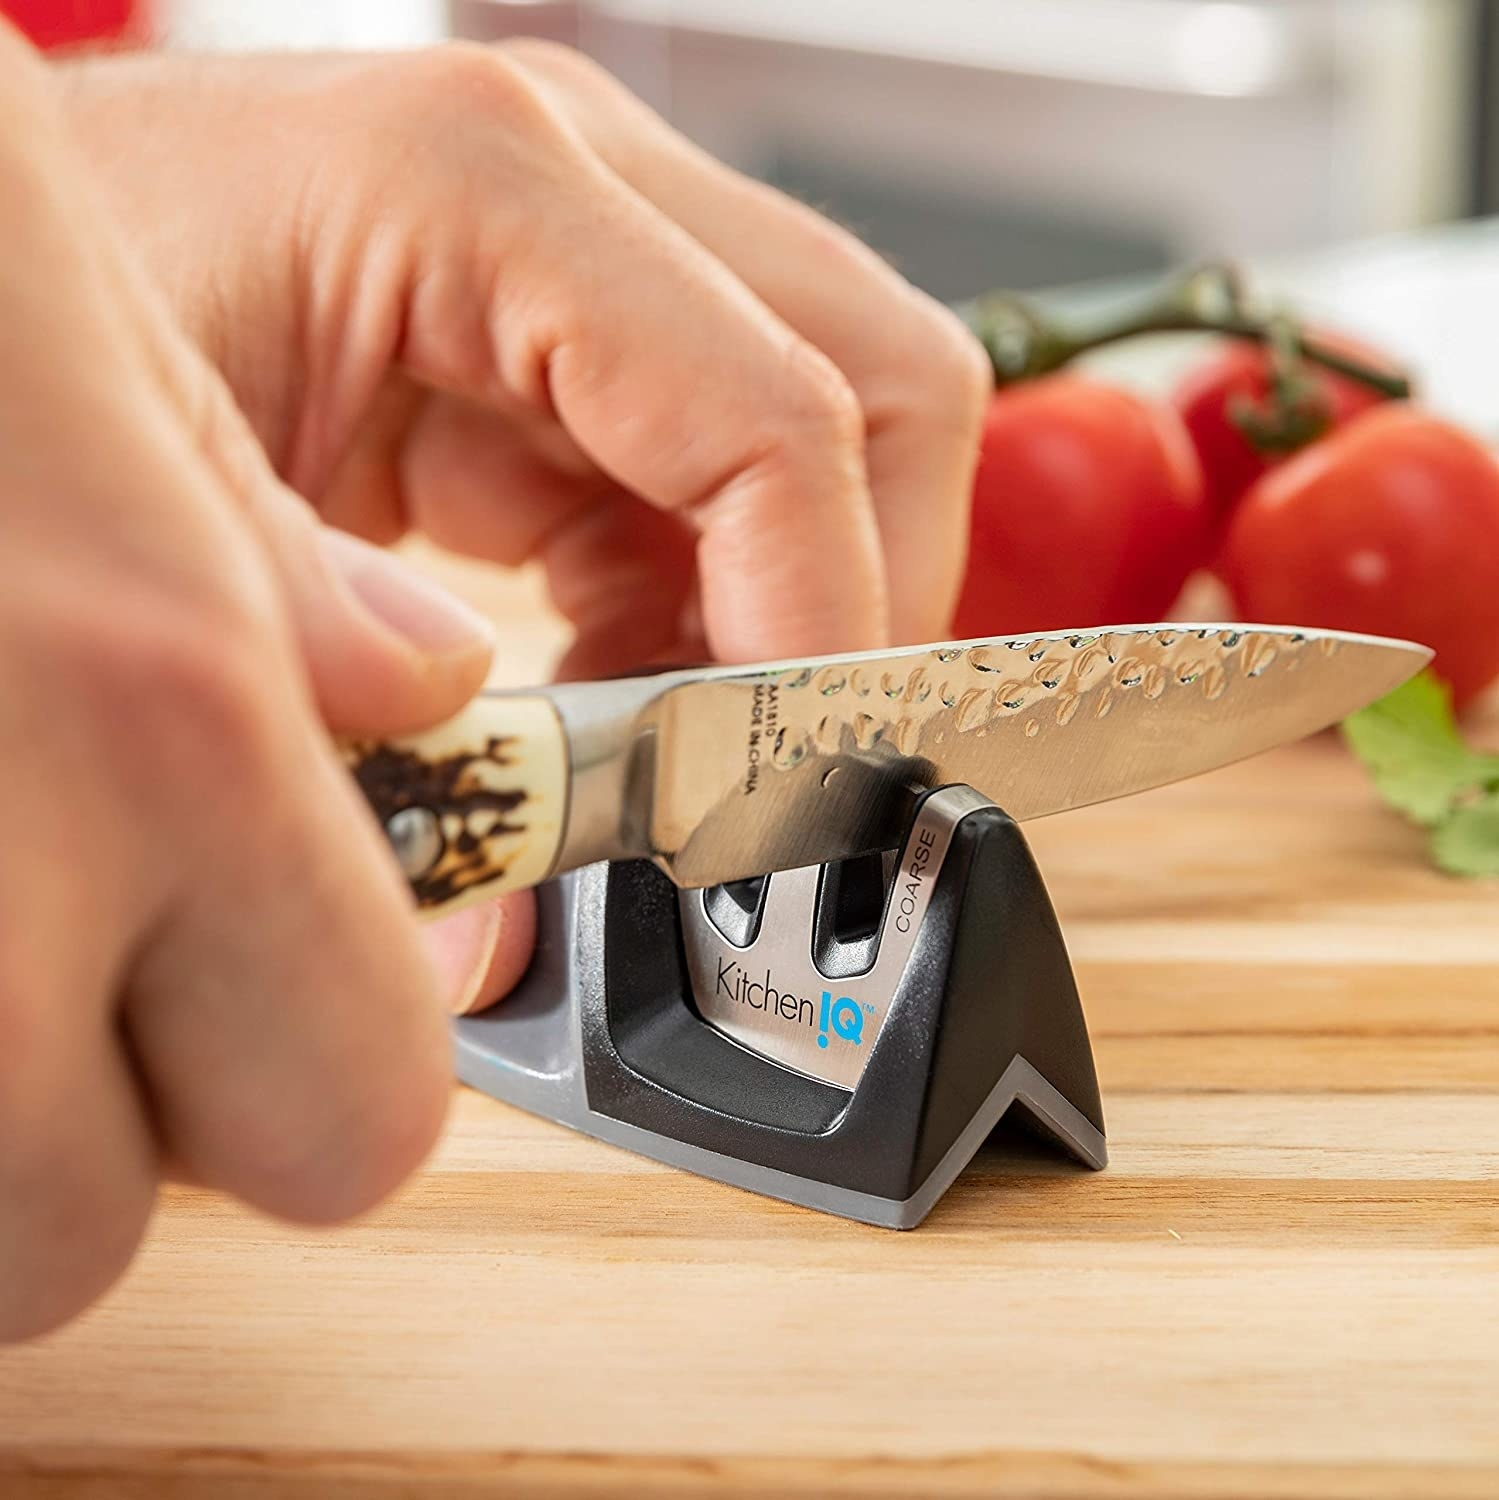 Hands sharpening a knife using the sharpener